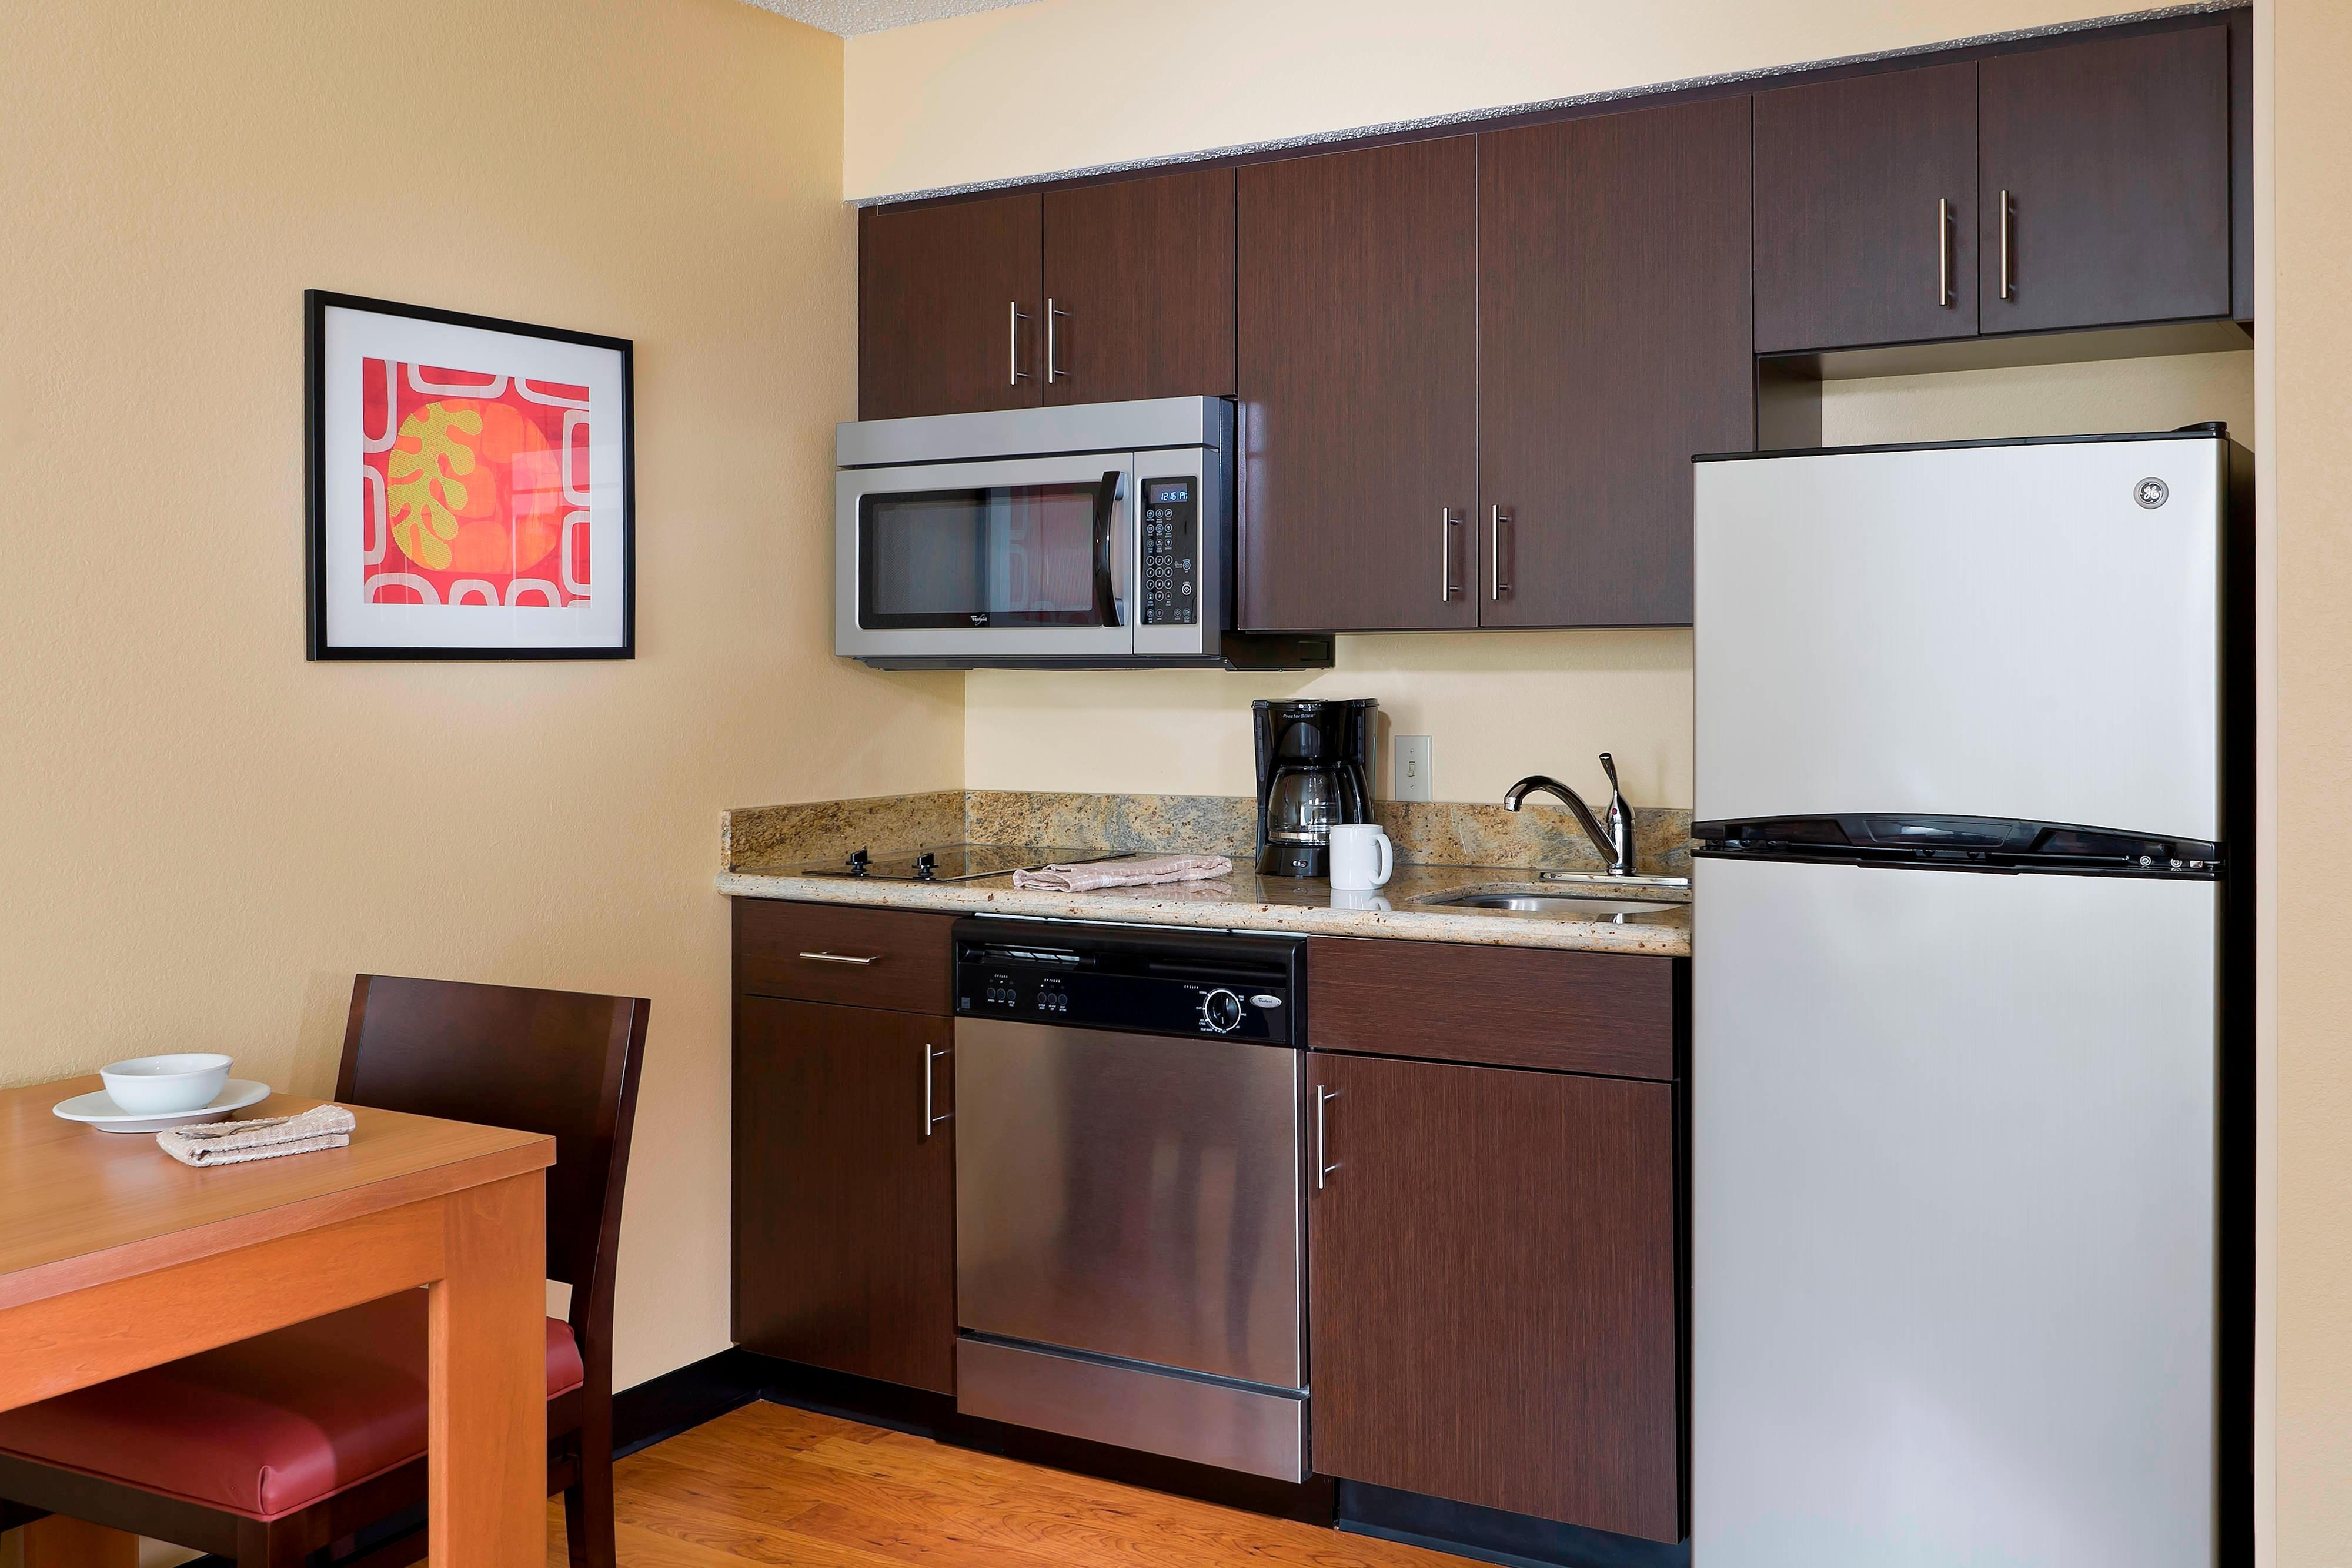 hotels near at t stadium bedford hotel towneplace suites dallas rh marriott com